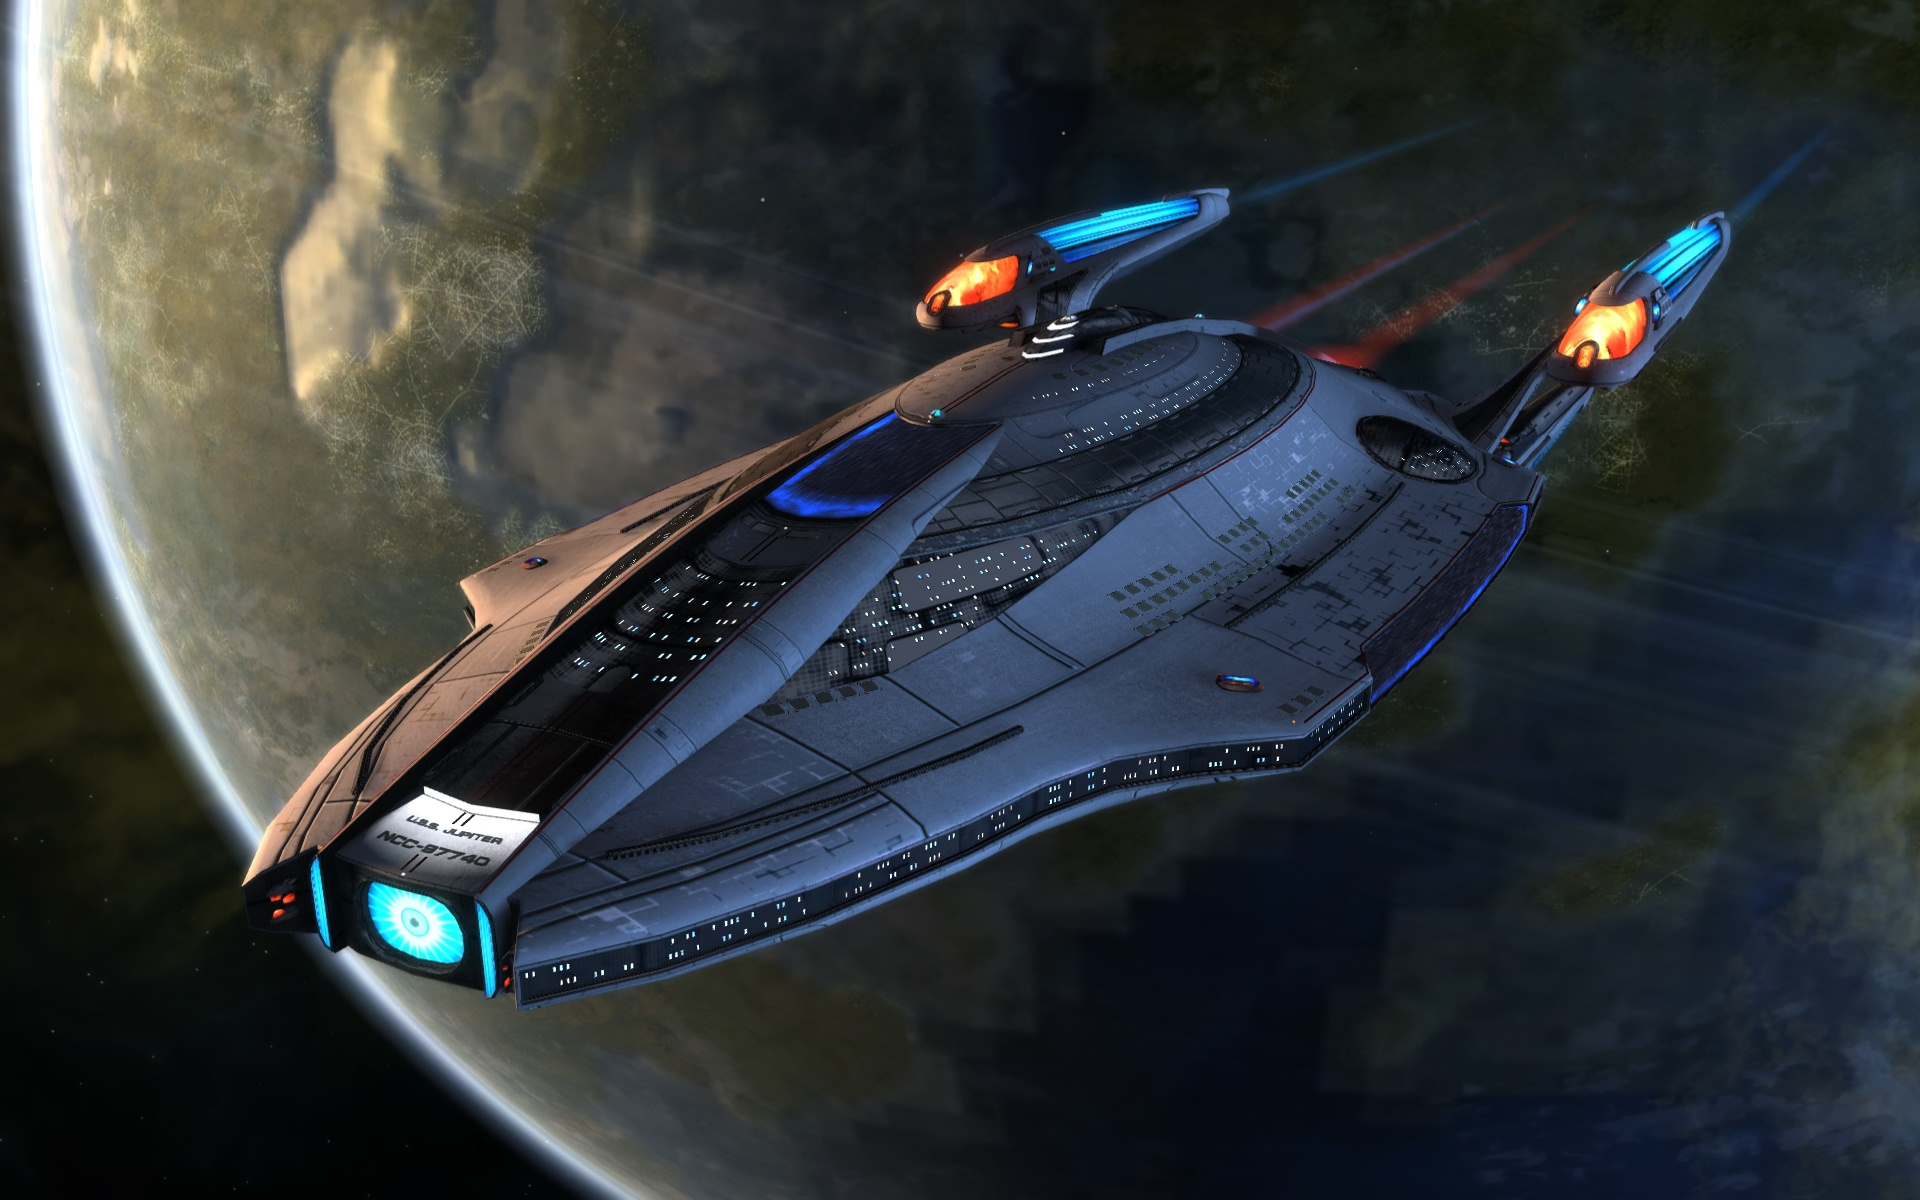 star trek future starship - photo #38